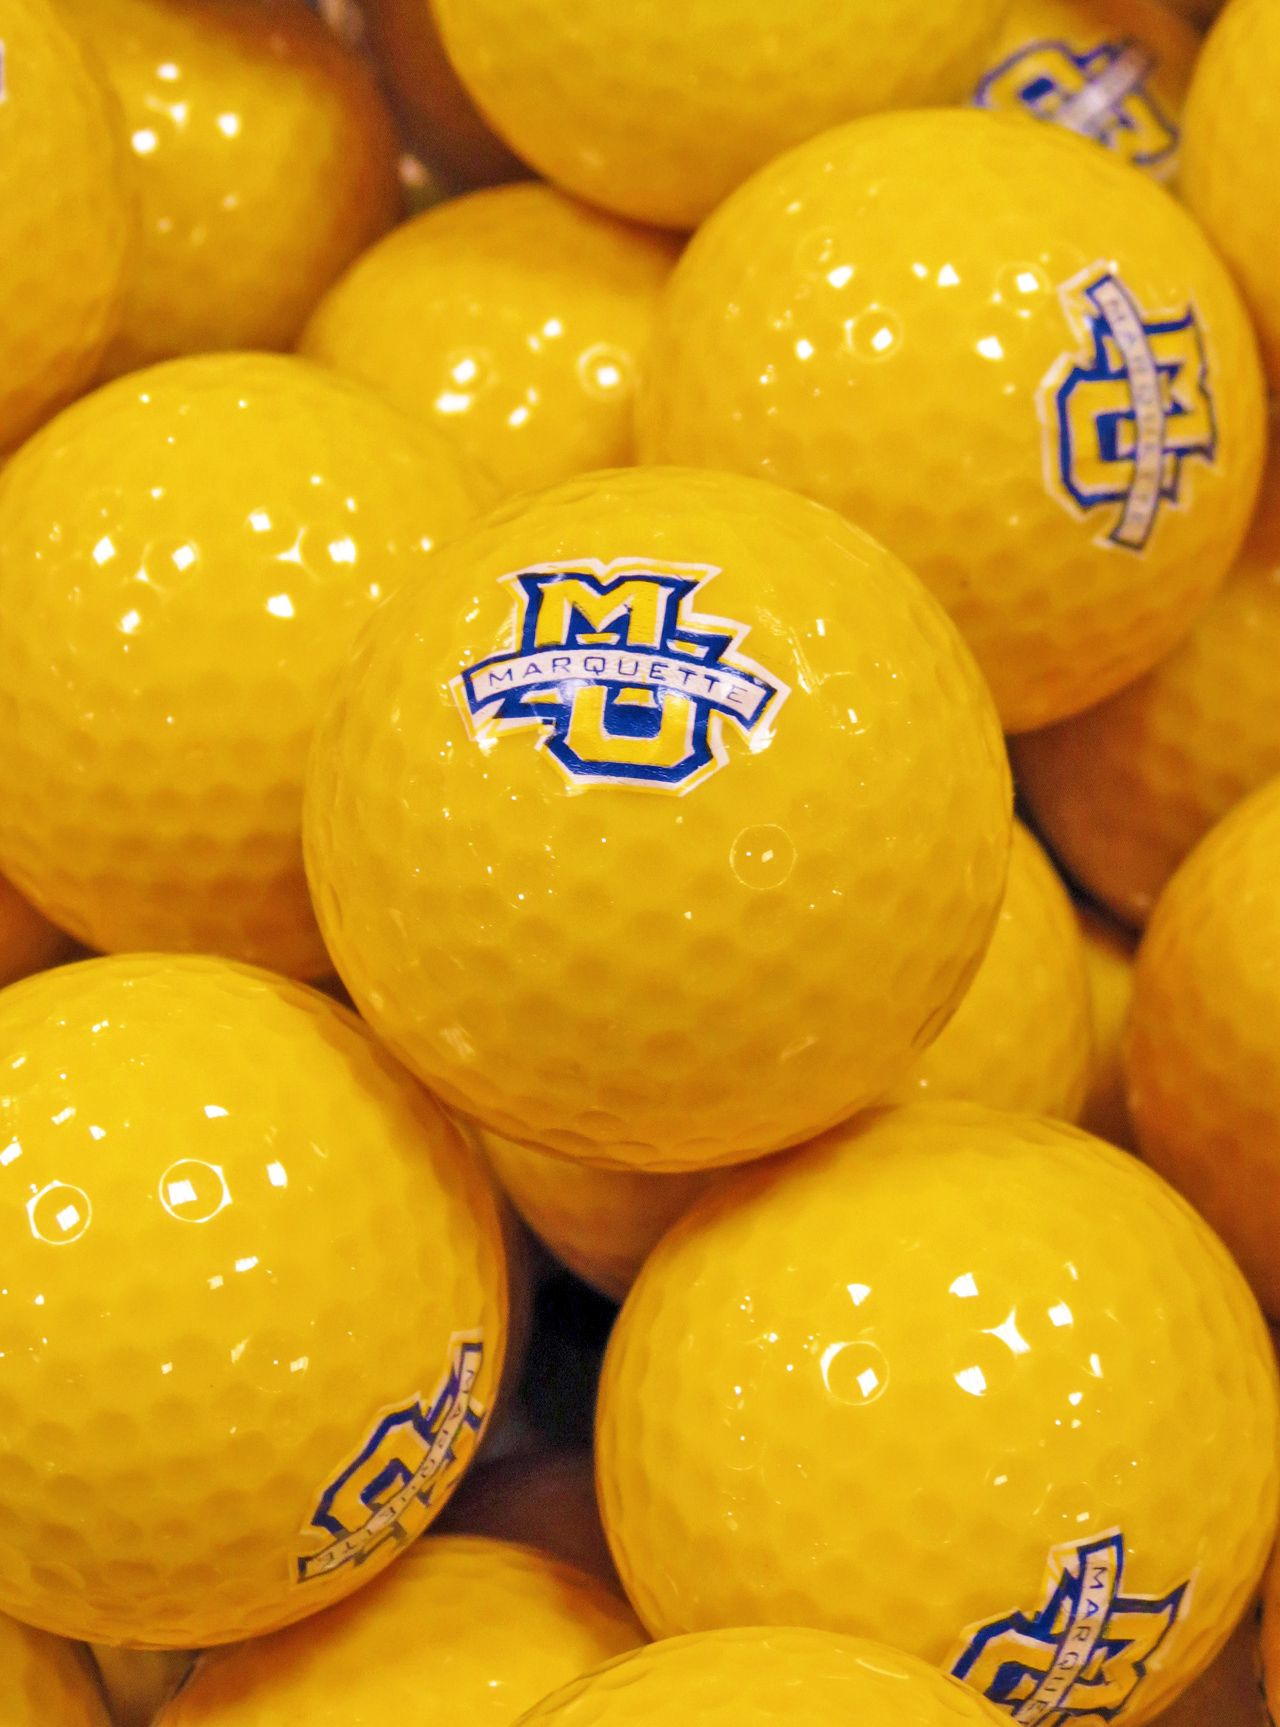 Get out the Marquette University golf balls for this great